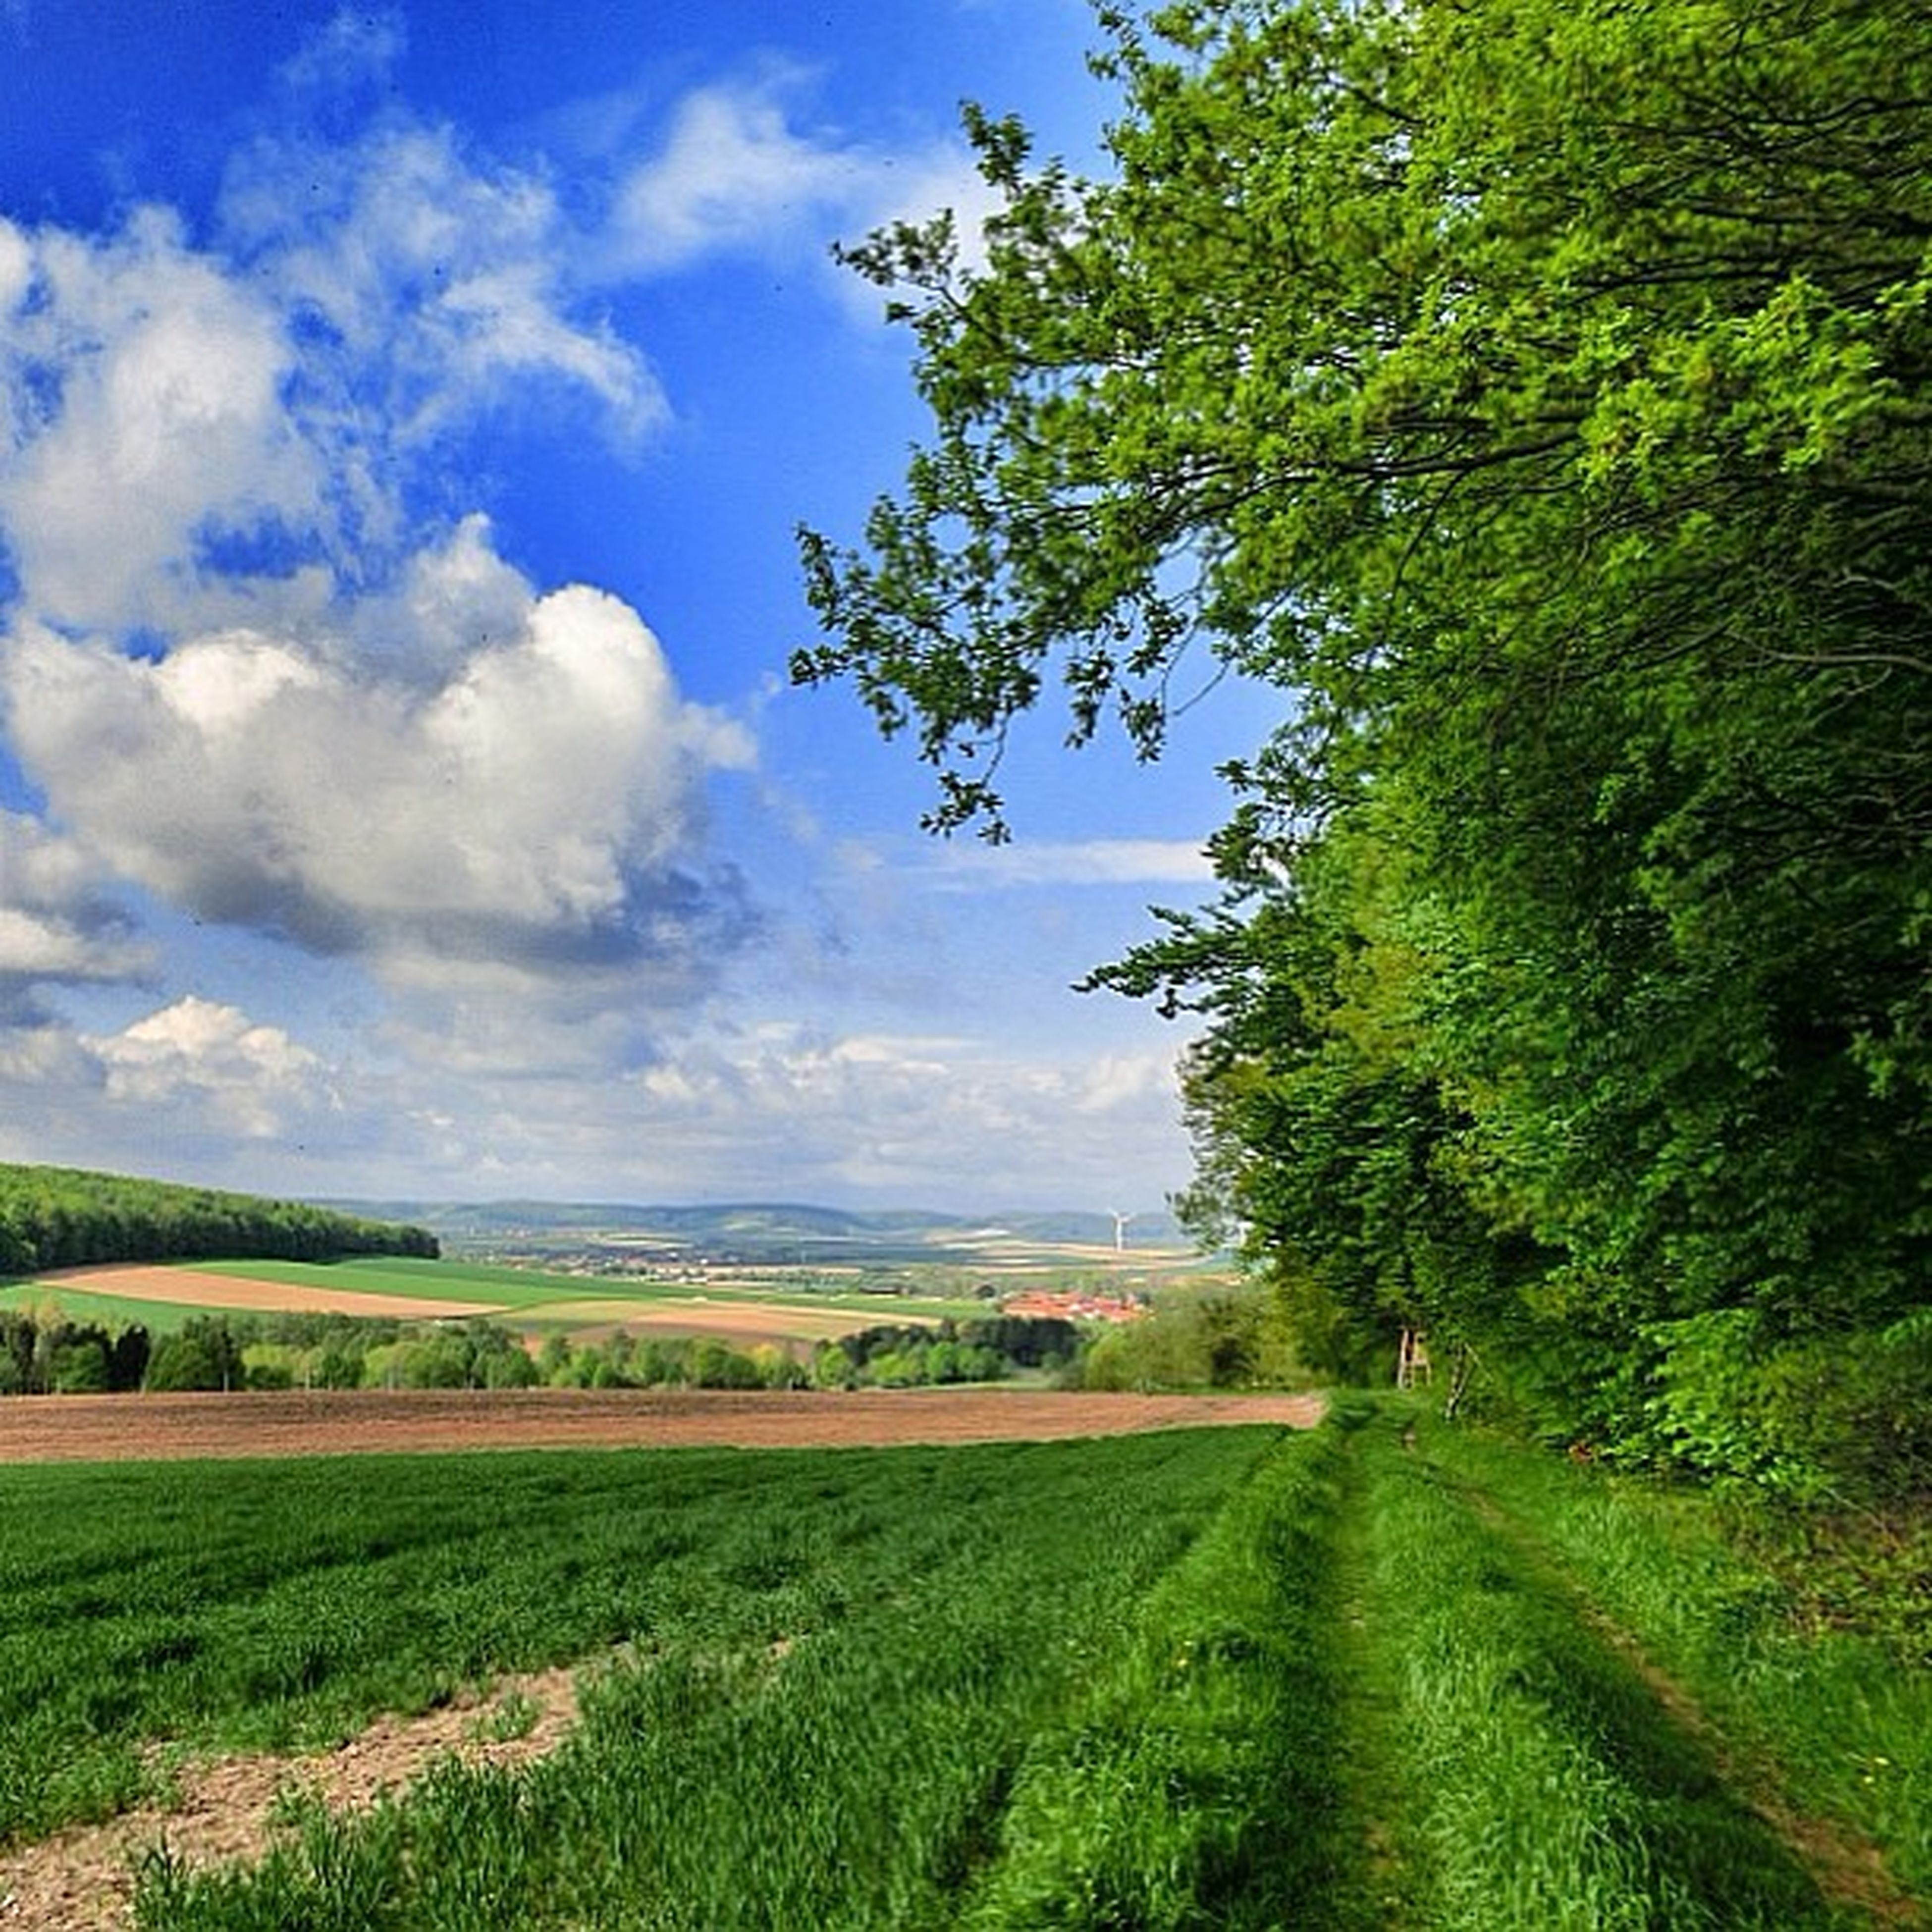 field, landscape, tranquil scene, sky, tranquility, tree, rural scene, agriculture, growth, grass, scenics, beauty in nature, nature, green color, farm, crop, cloud, cloud - sky, cultivated land, grassy